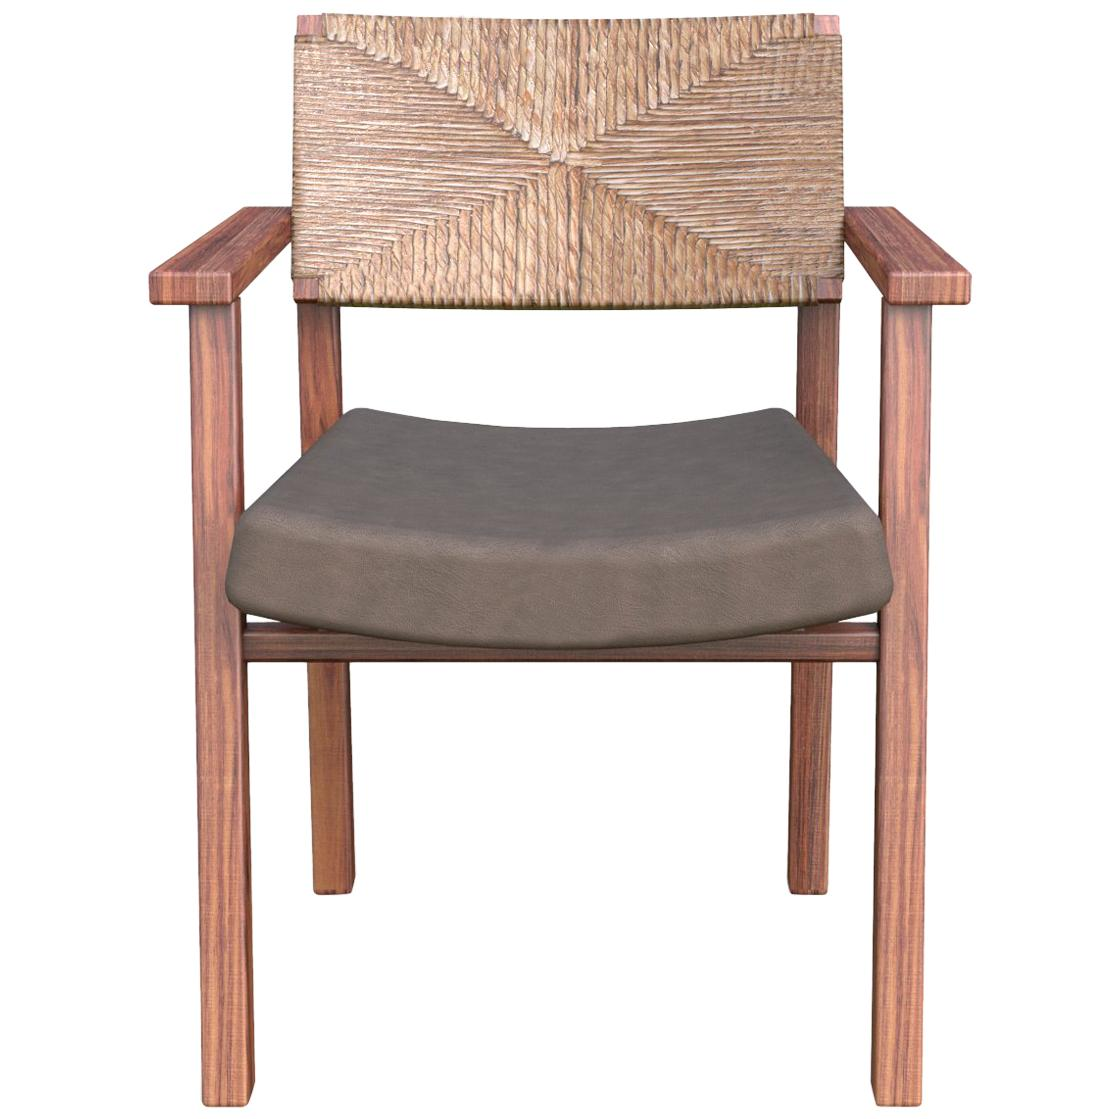 Lago Dining Chair, Contemporary Mexican Design